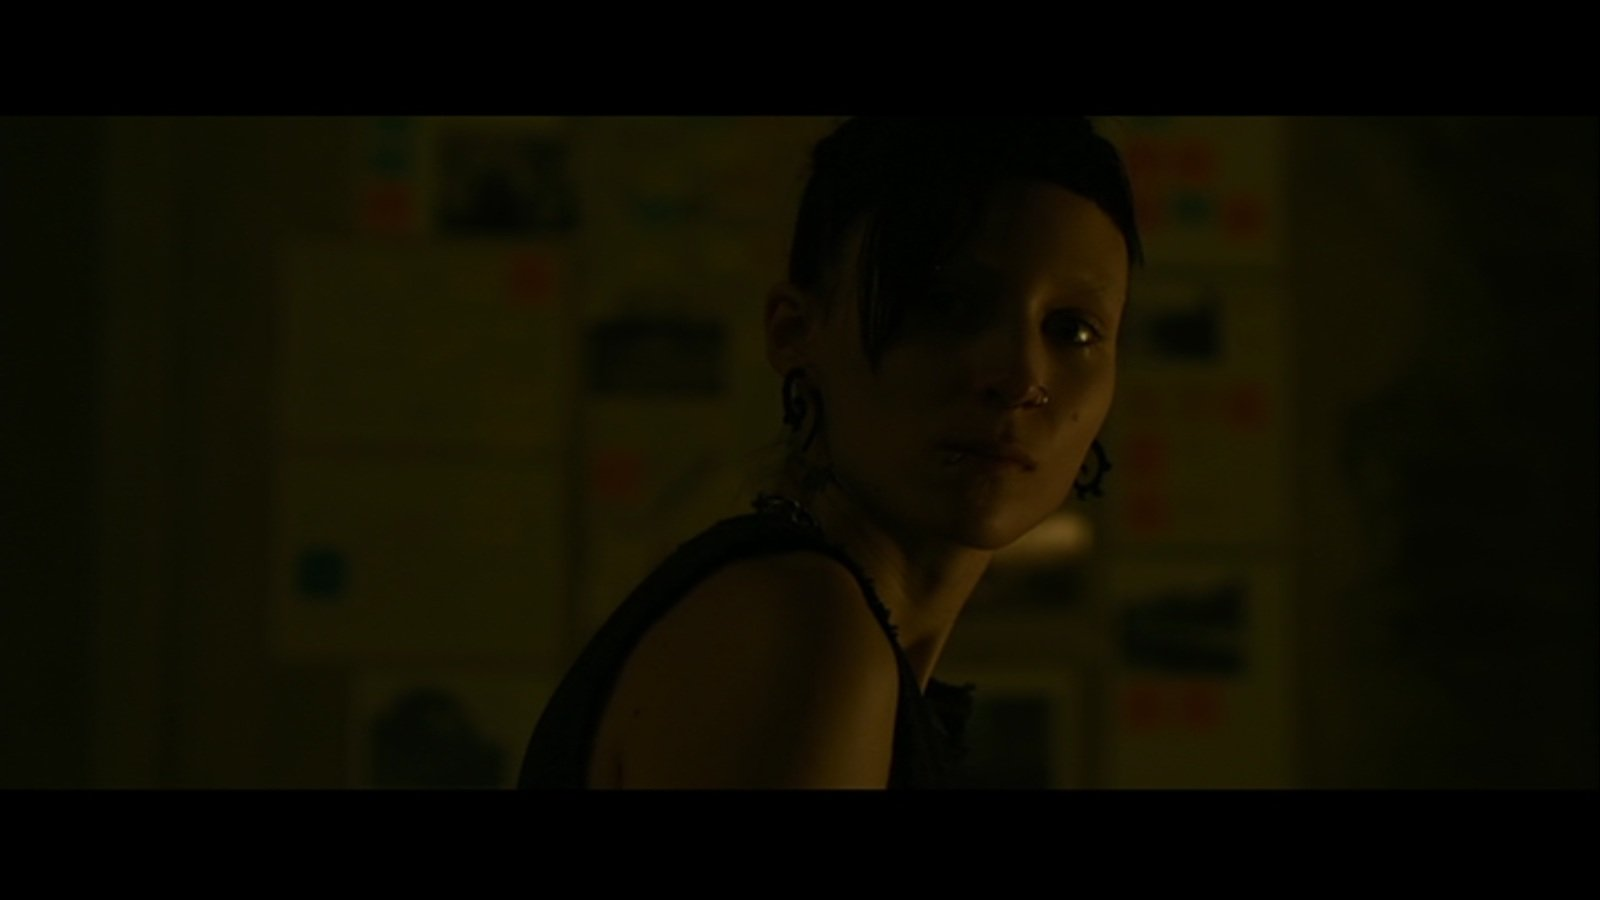 High Resolution The Girl With The Dragon Tattoo Hd 1600x900